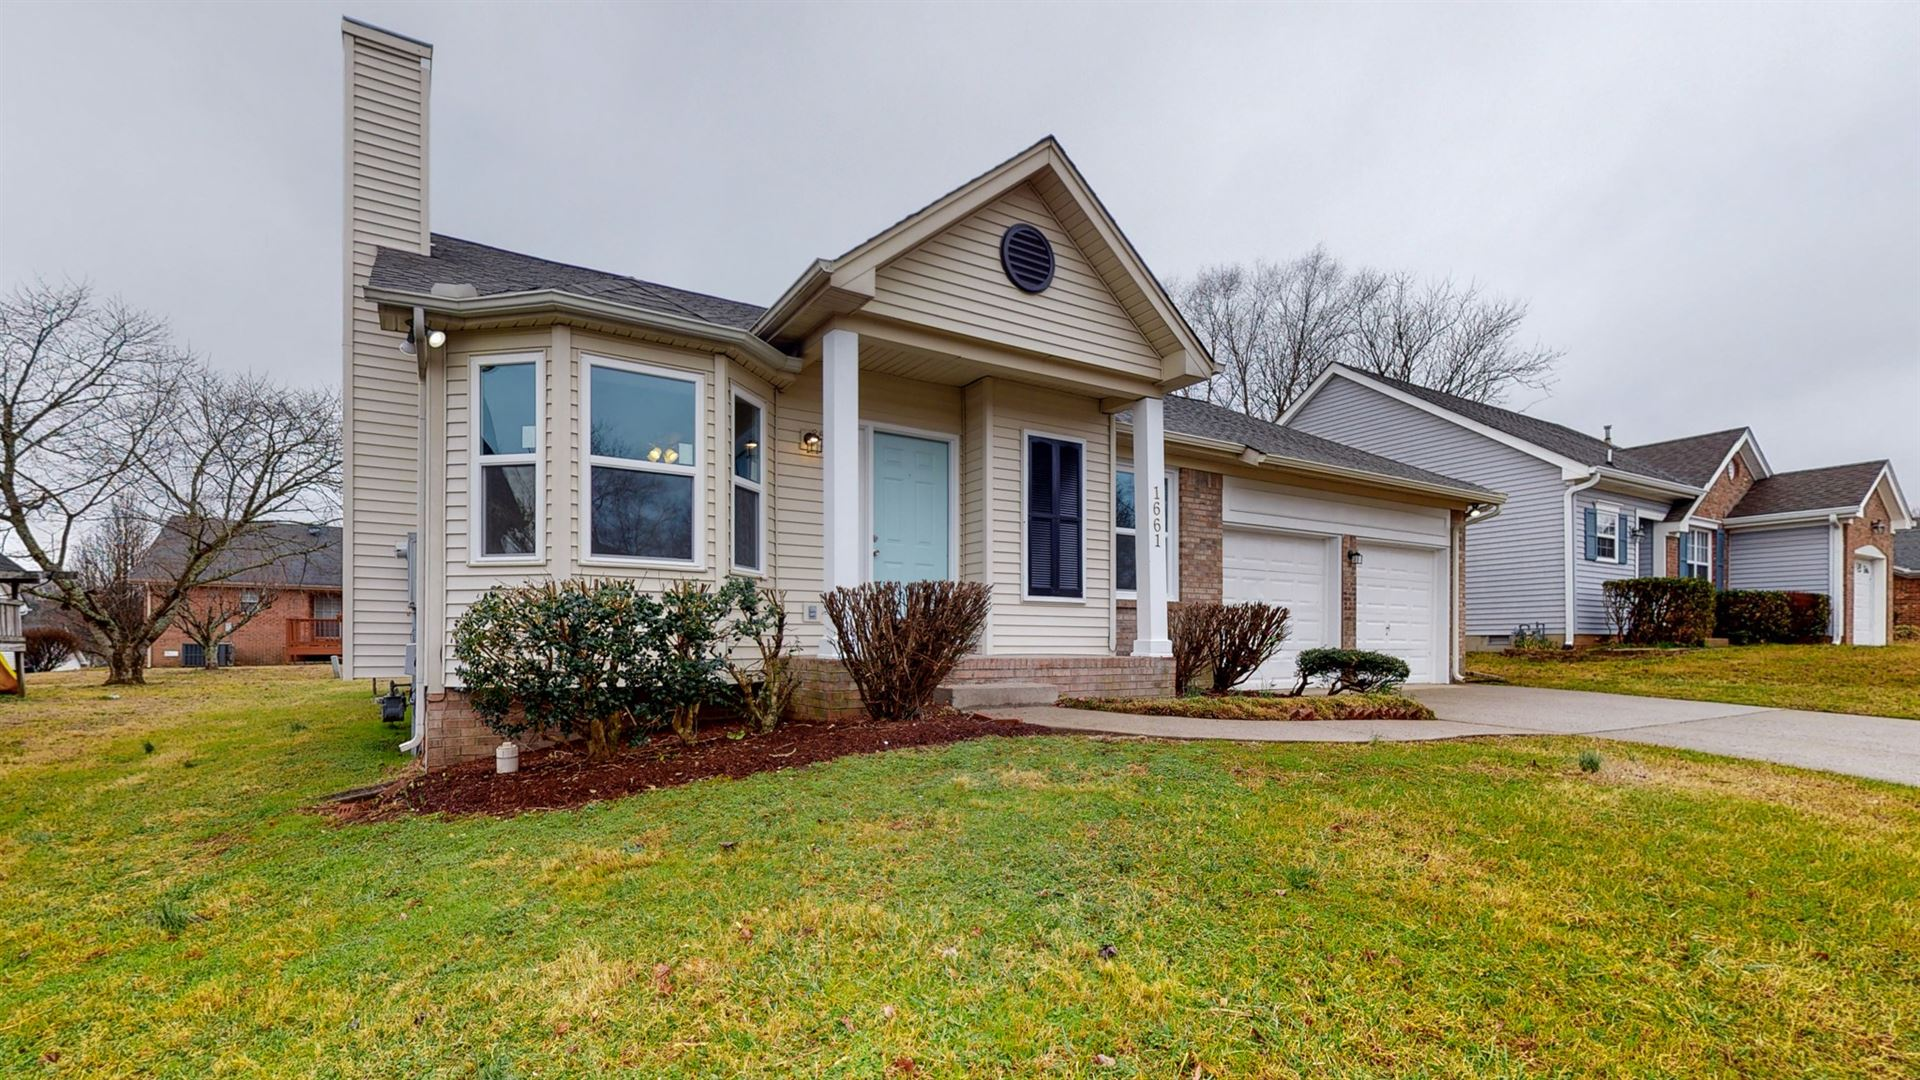 1661 Aaronwood Dr, Old Hickory, TN 37138 - MLS#: 2232087